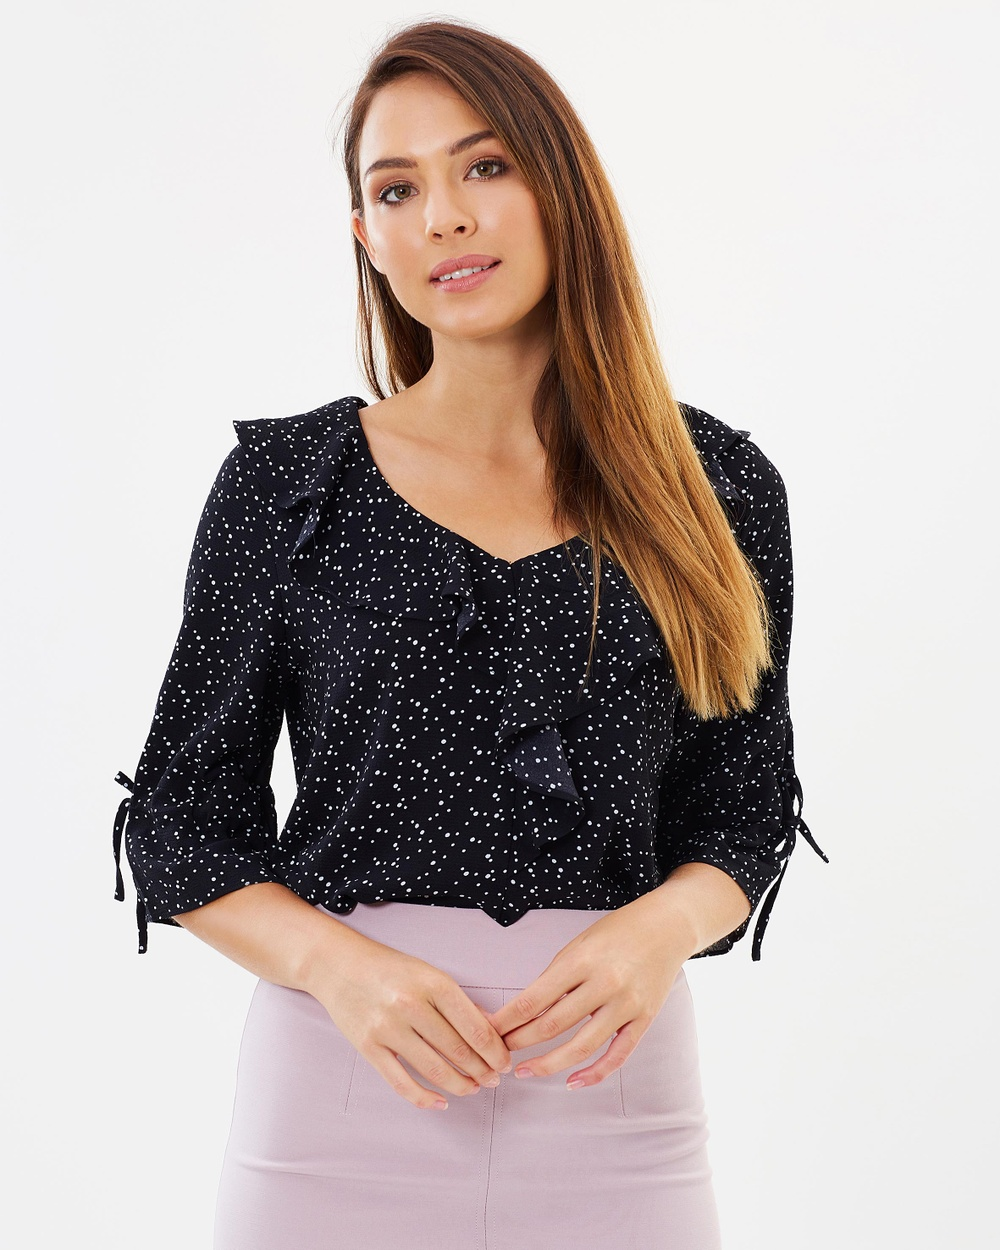 Forcast Sadie Frill Blouse Tops Black Sadie Frill Blouse